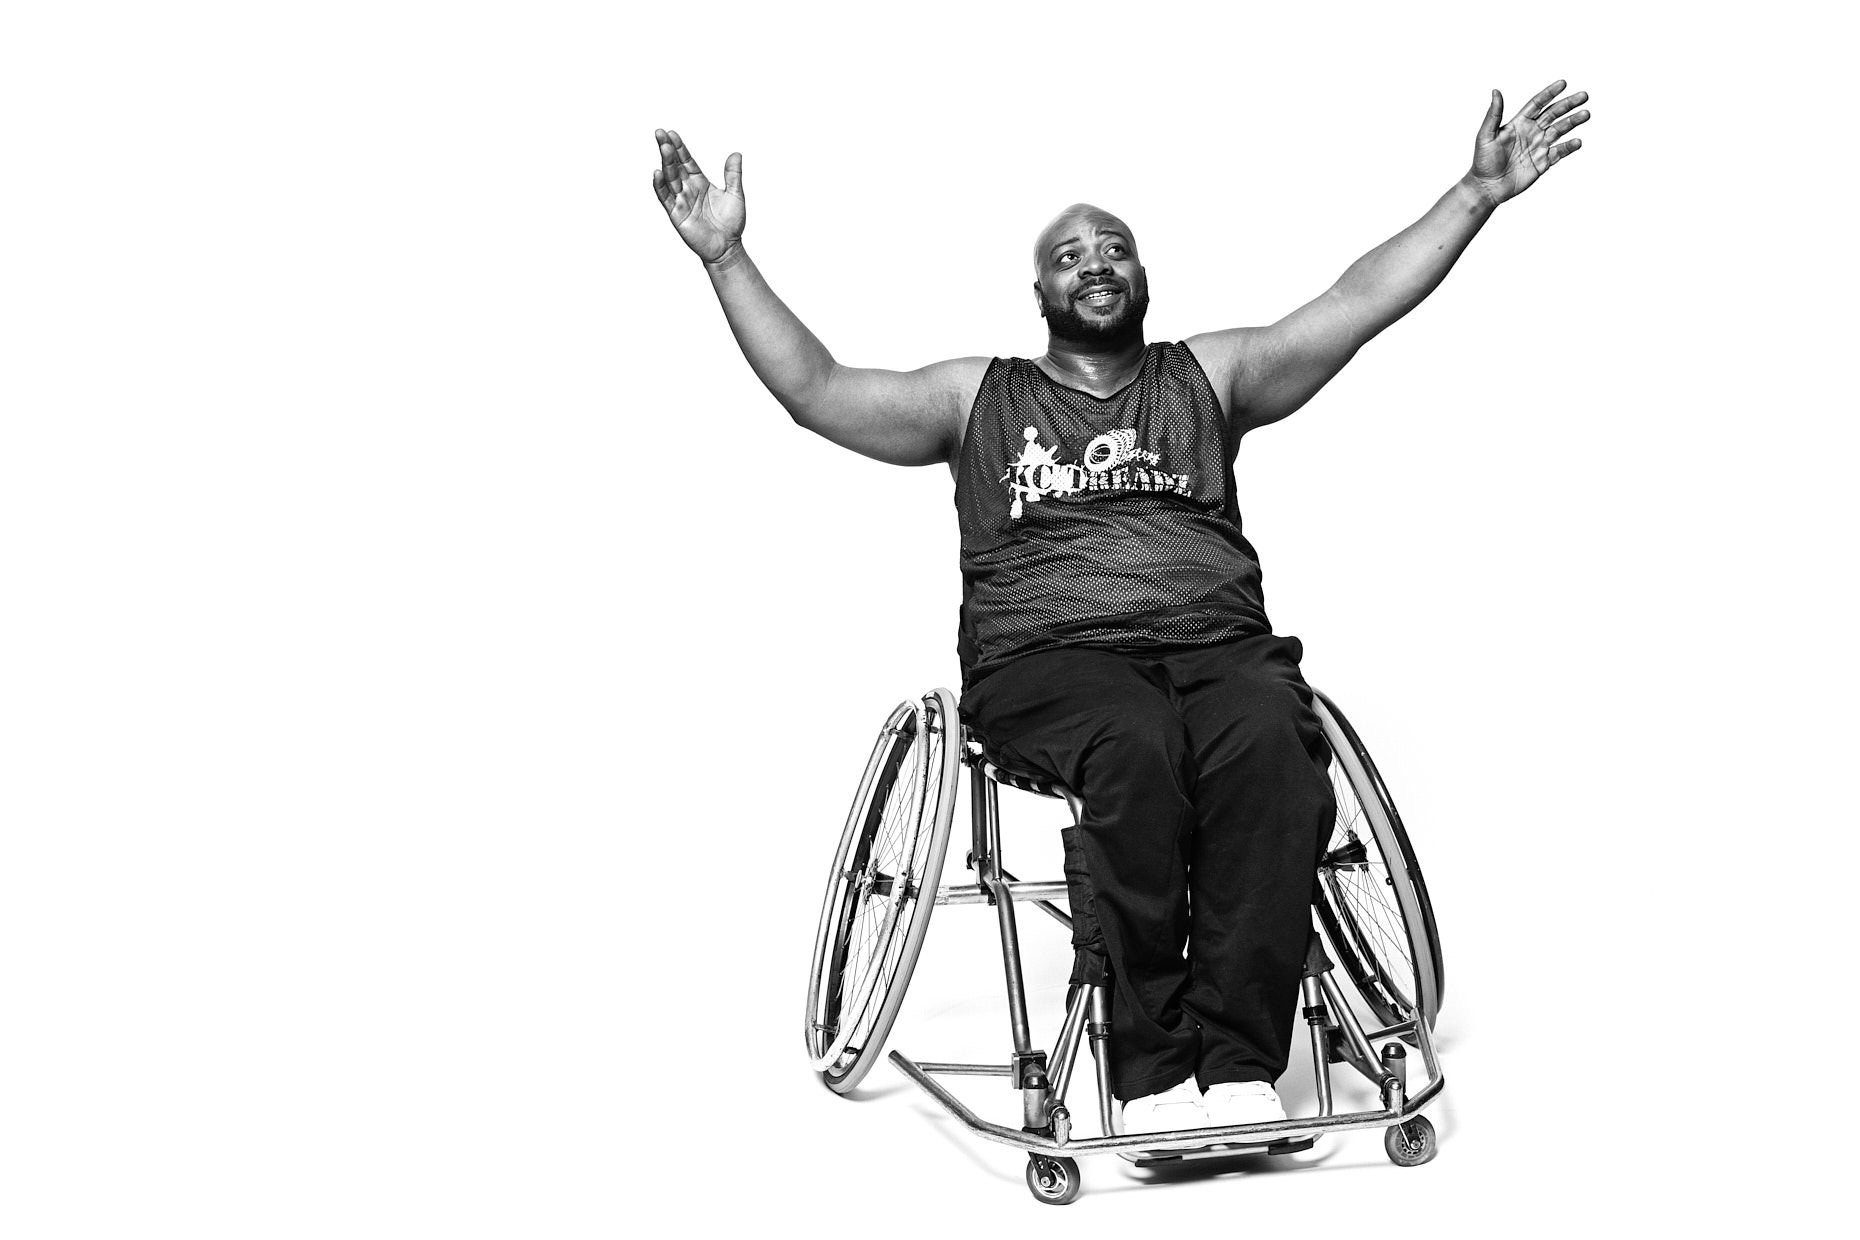 Jason Tracy - Location Portrait Photographer Kansas City - Michael Minor Wheelchair Basketball Player